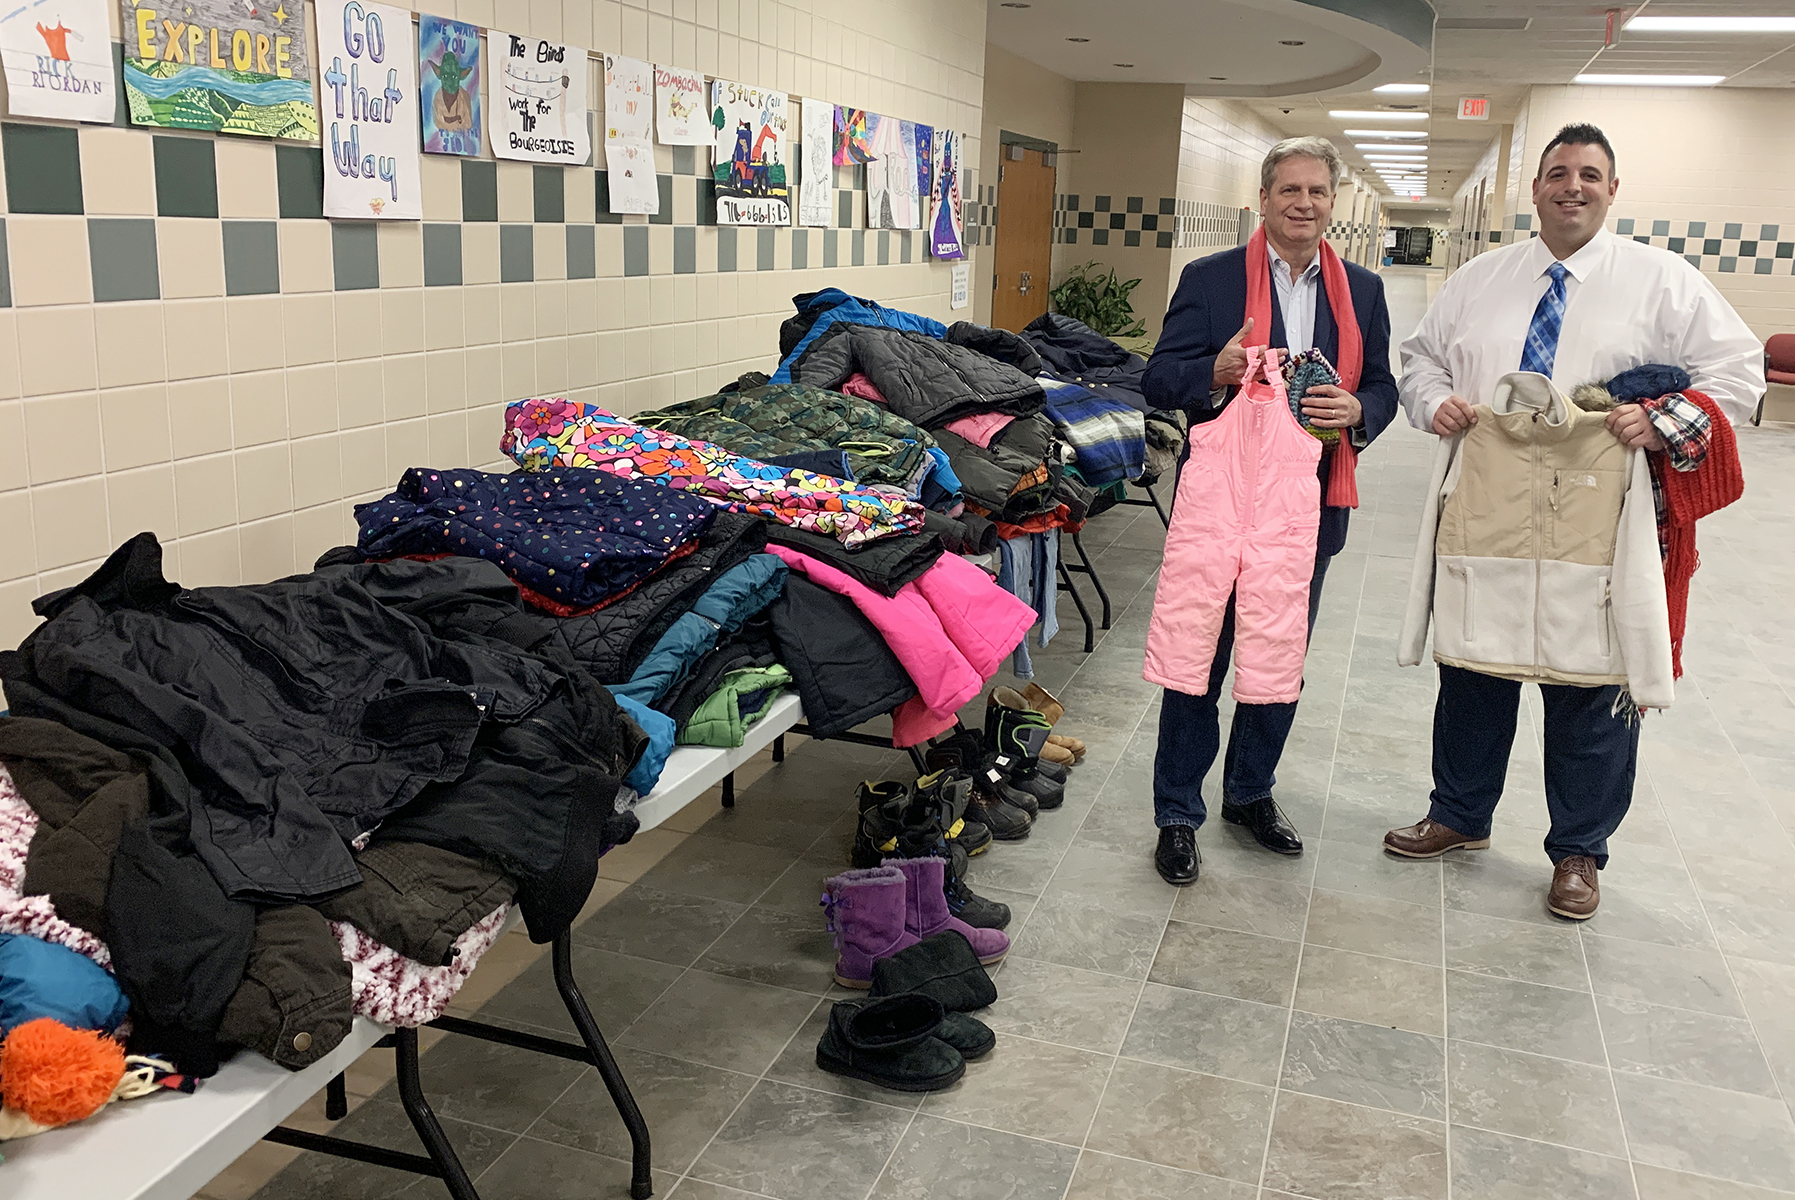 John Zabrodsky, Jamestown PROMISE Fund Advisory Board Chair, and Chad Bongiovanni, JPS Director of Student Services, with just some of the many winter clothing donations collected from the community for students.